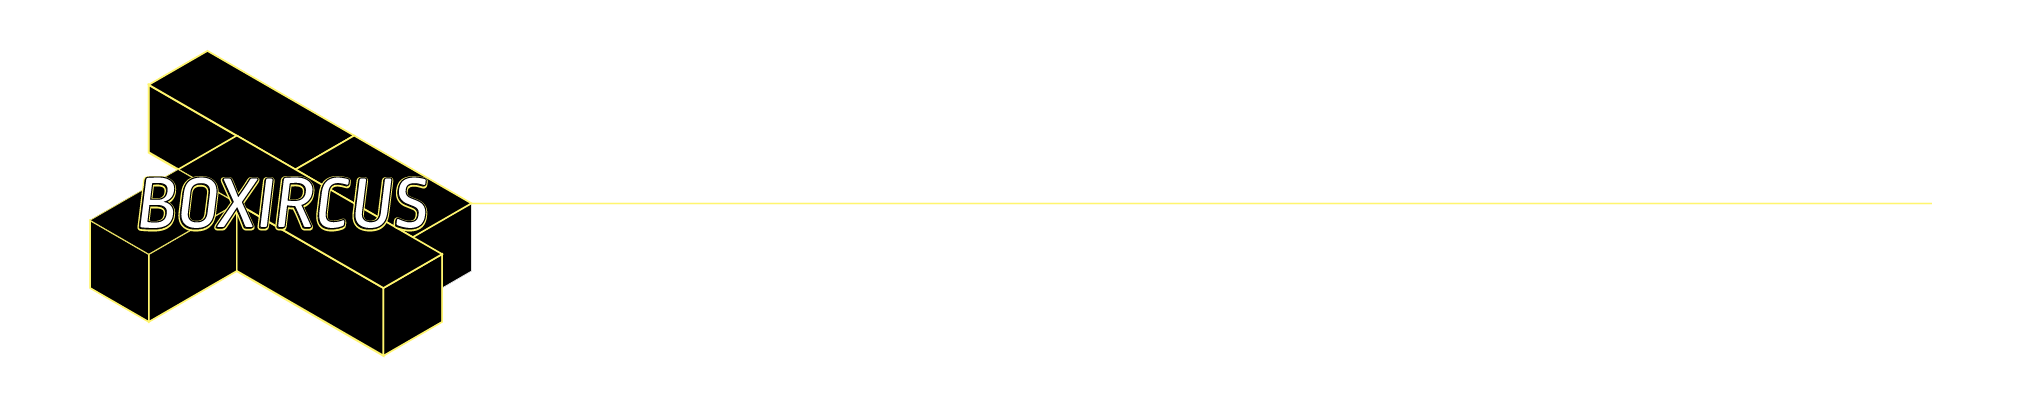 Street Food Container